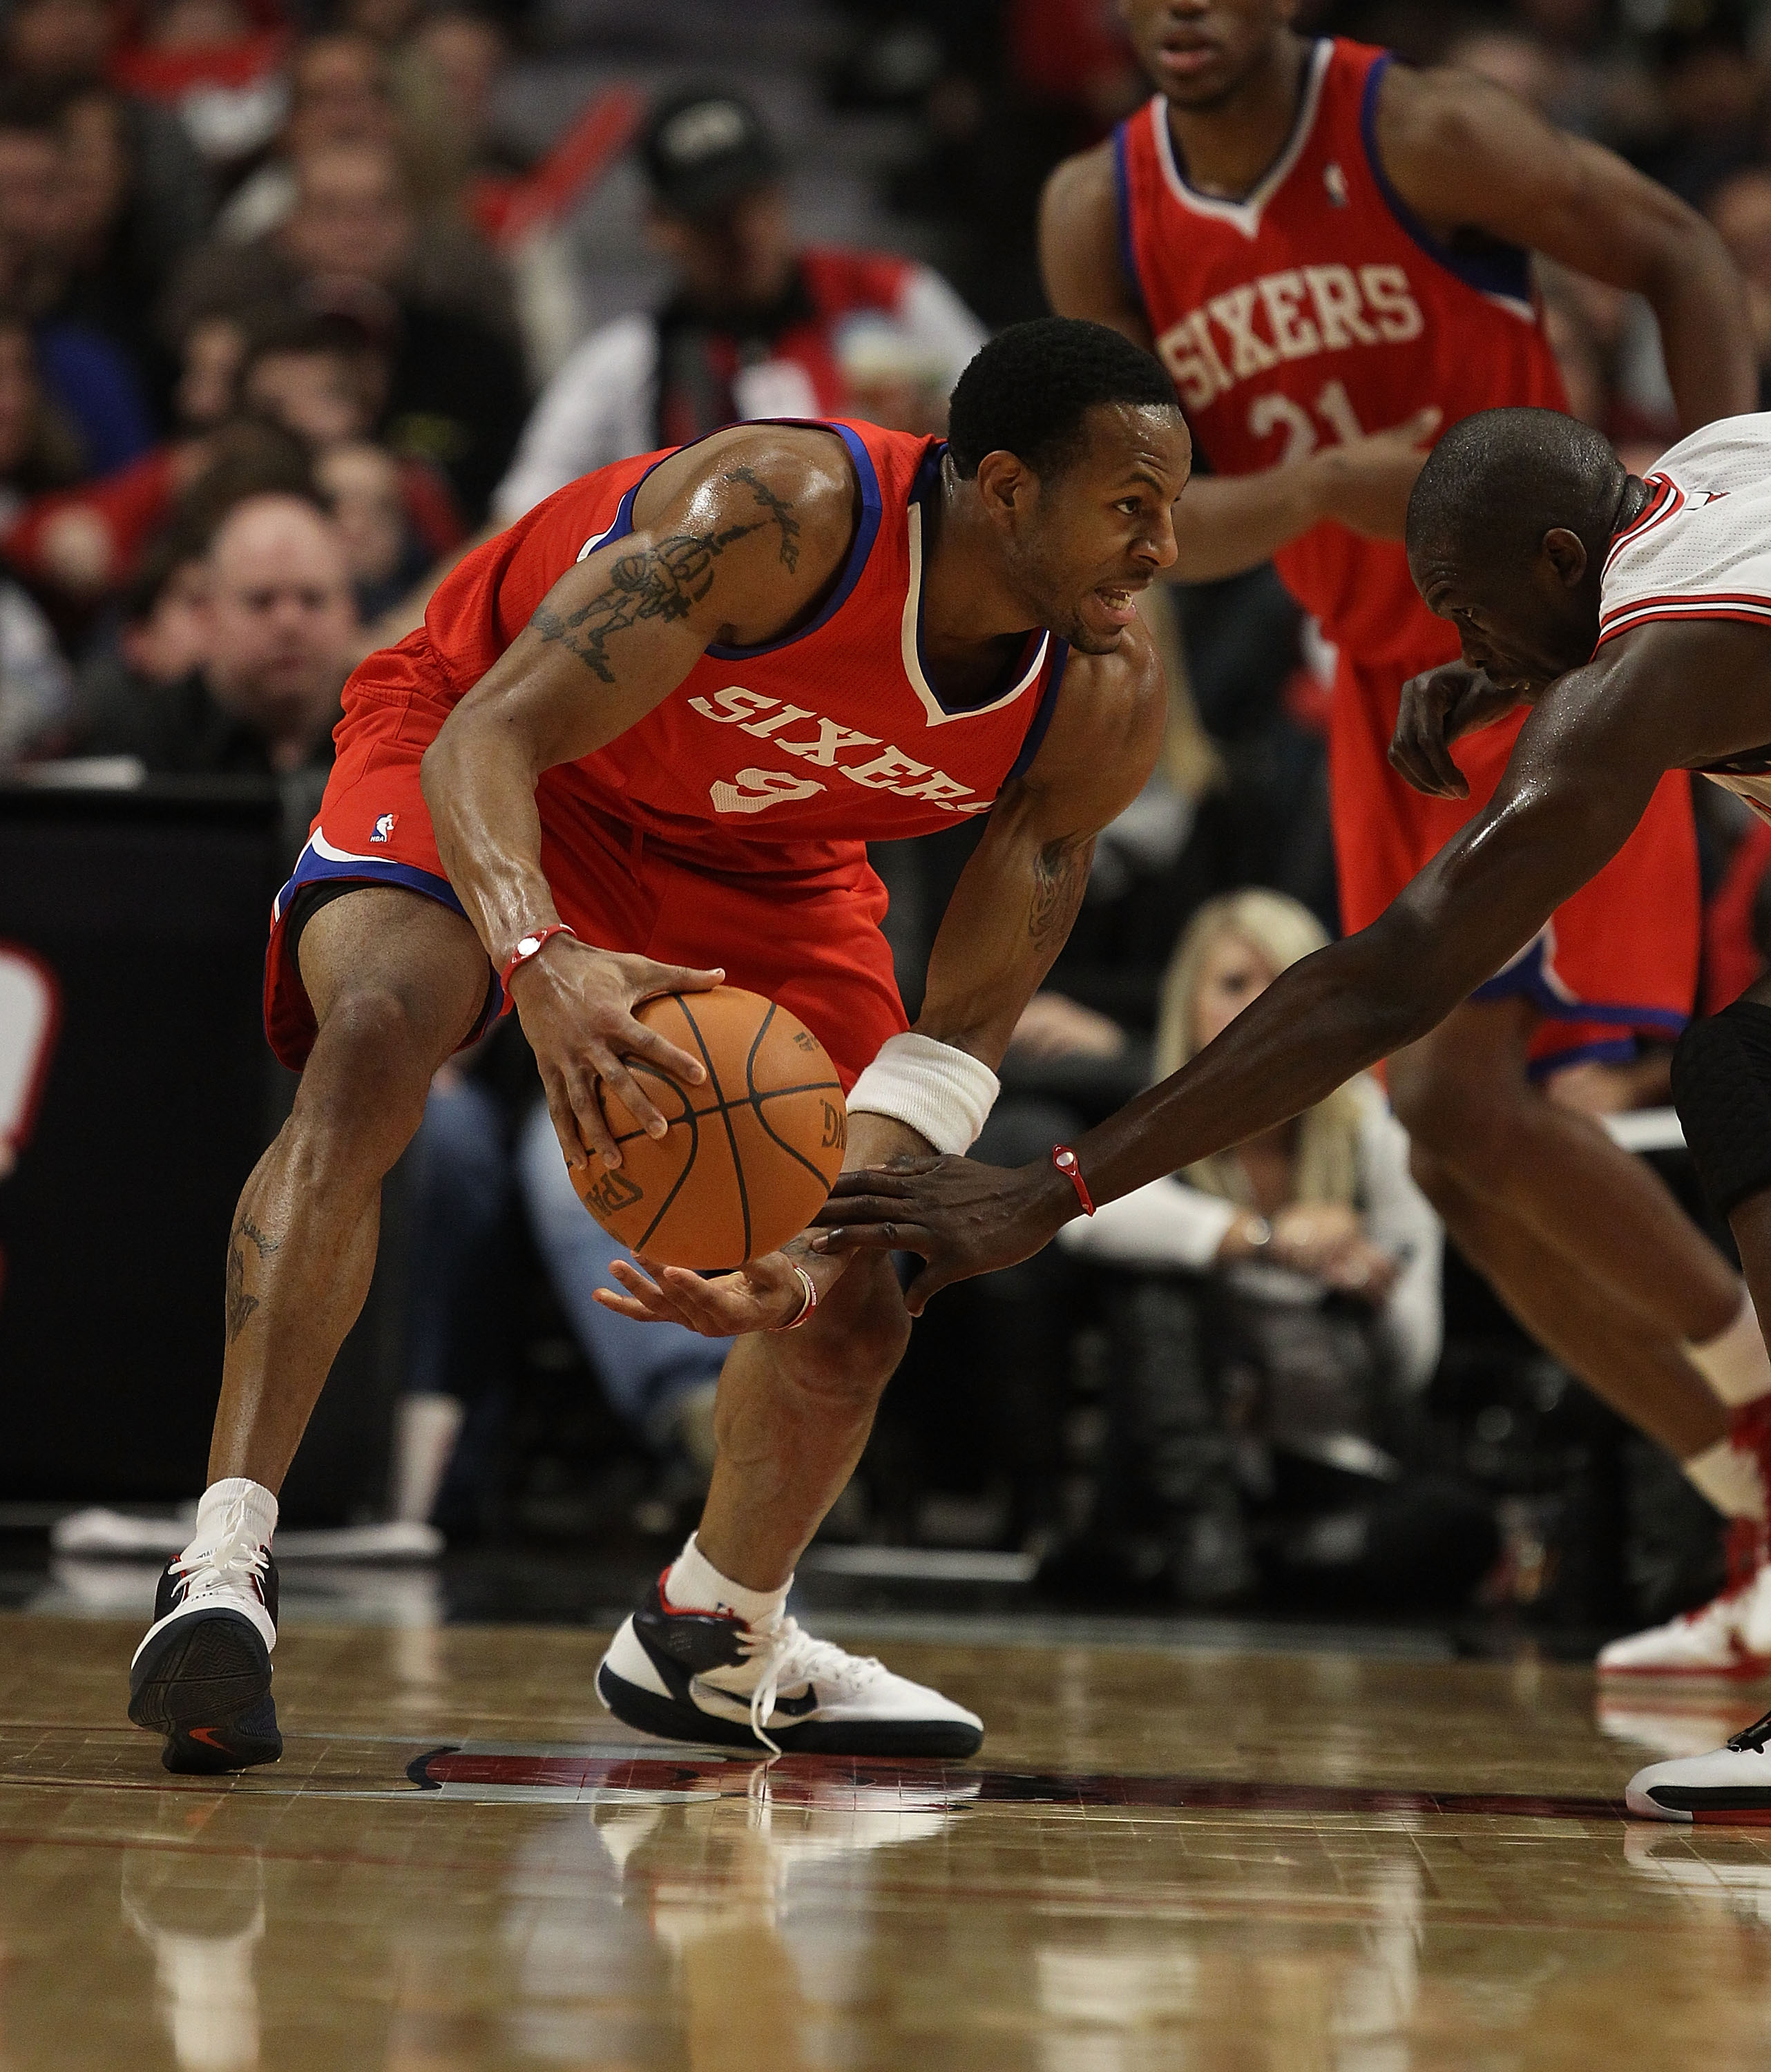 CHICAGO, IL - DECEMBER 21: Andre Iguodala #9 of the Philadelphia 76ers tries to move against Loul Deng #9 of the Chicago Bulls at the United Center on December 21, 2010 in Chicago, Illinois. The Bulls defeated the 76ers 121-76. NOTE TO USER: User expressl